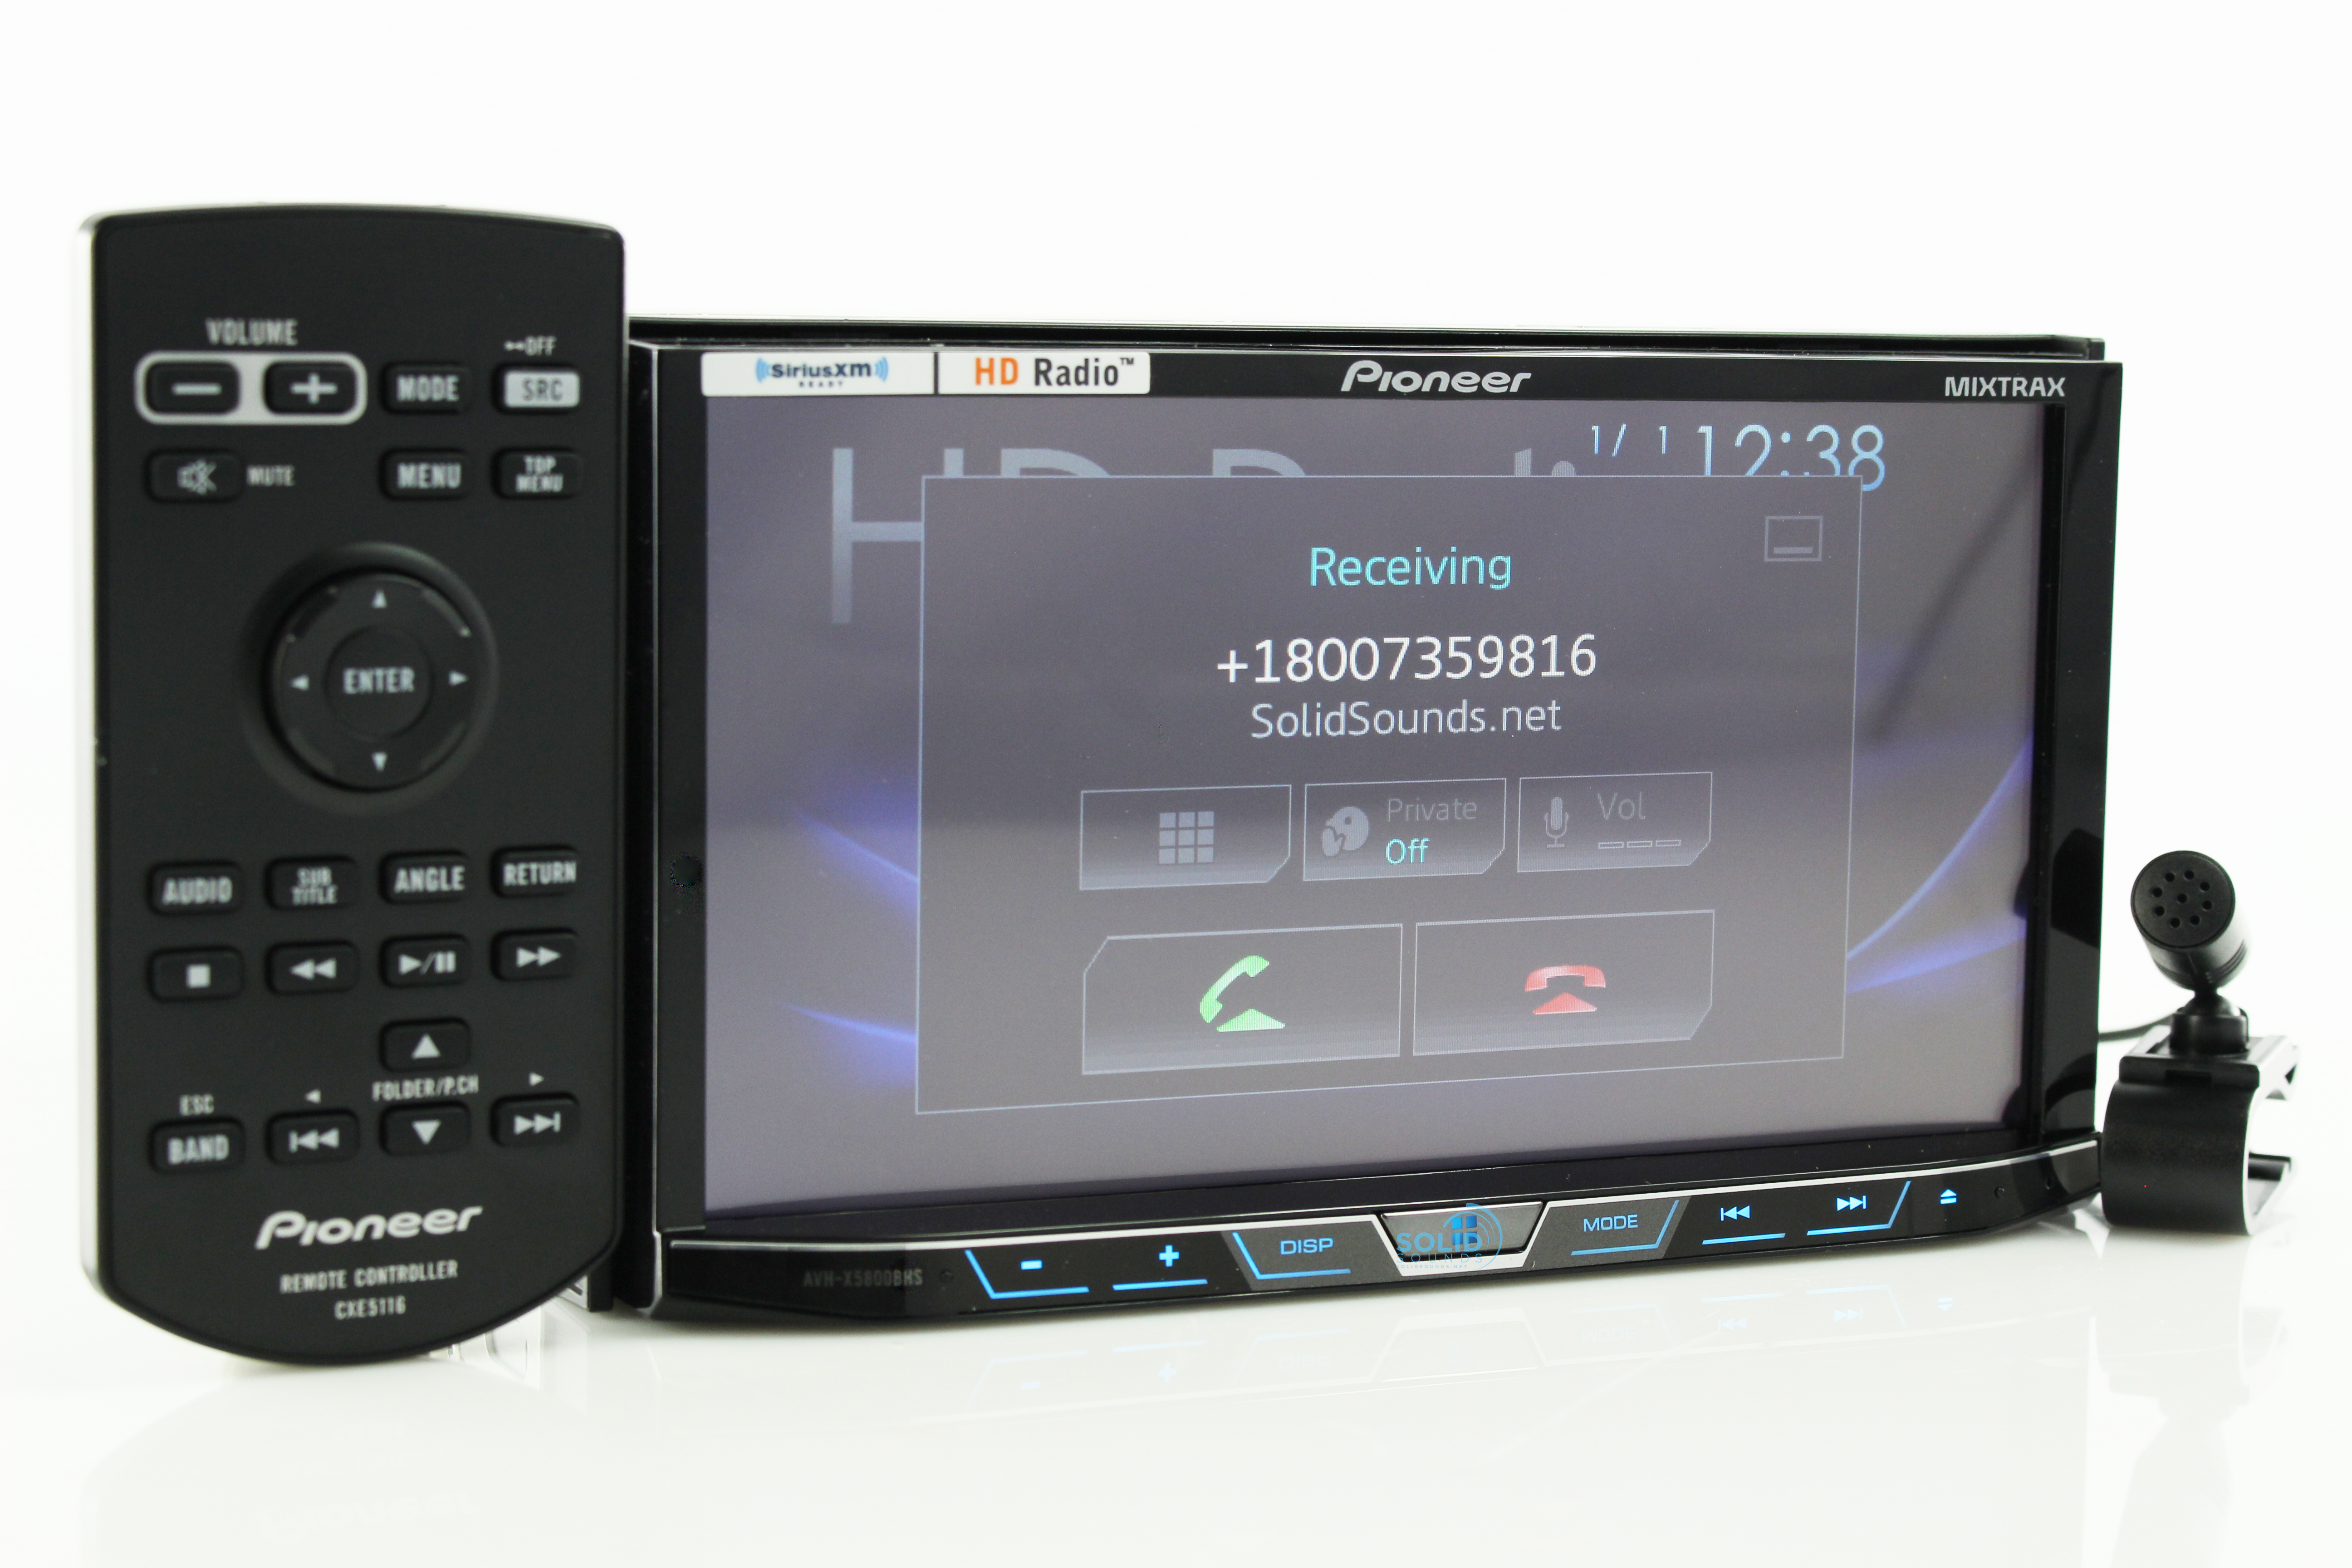 new pioneer avh x5800bhs double din 7 cd bluetooth hd radio dvd xm car audio ebay. Black Bedroom Furniture Sets. Home Design Ideas